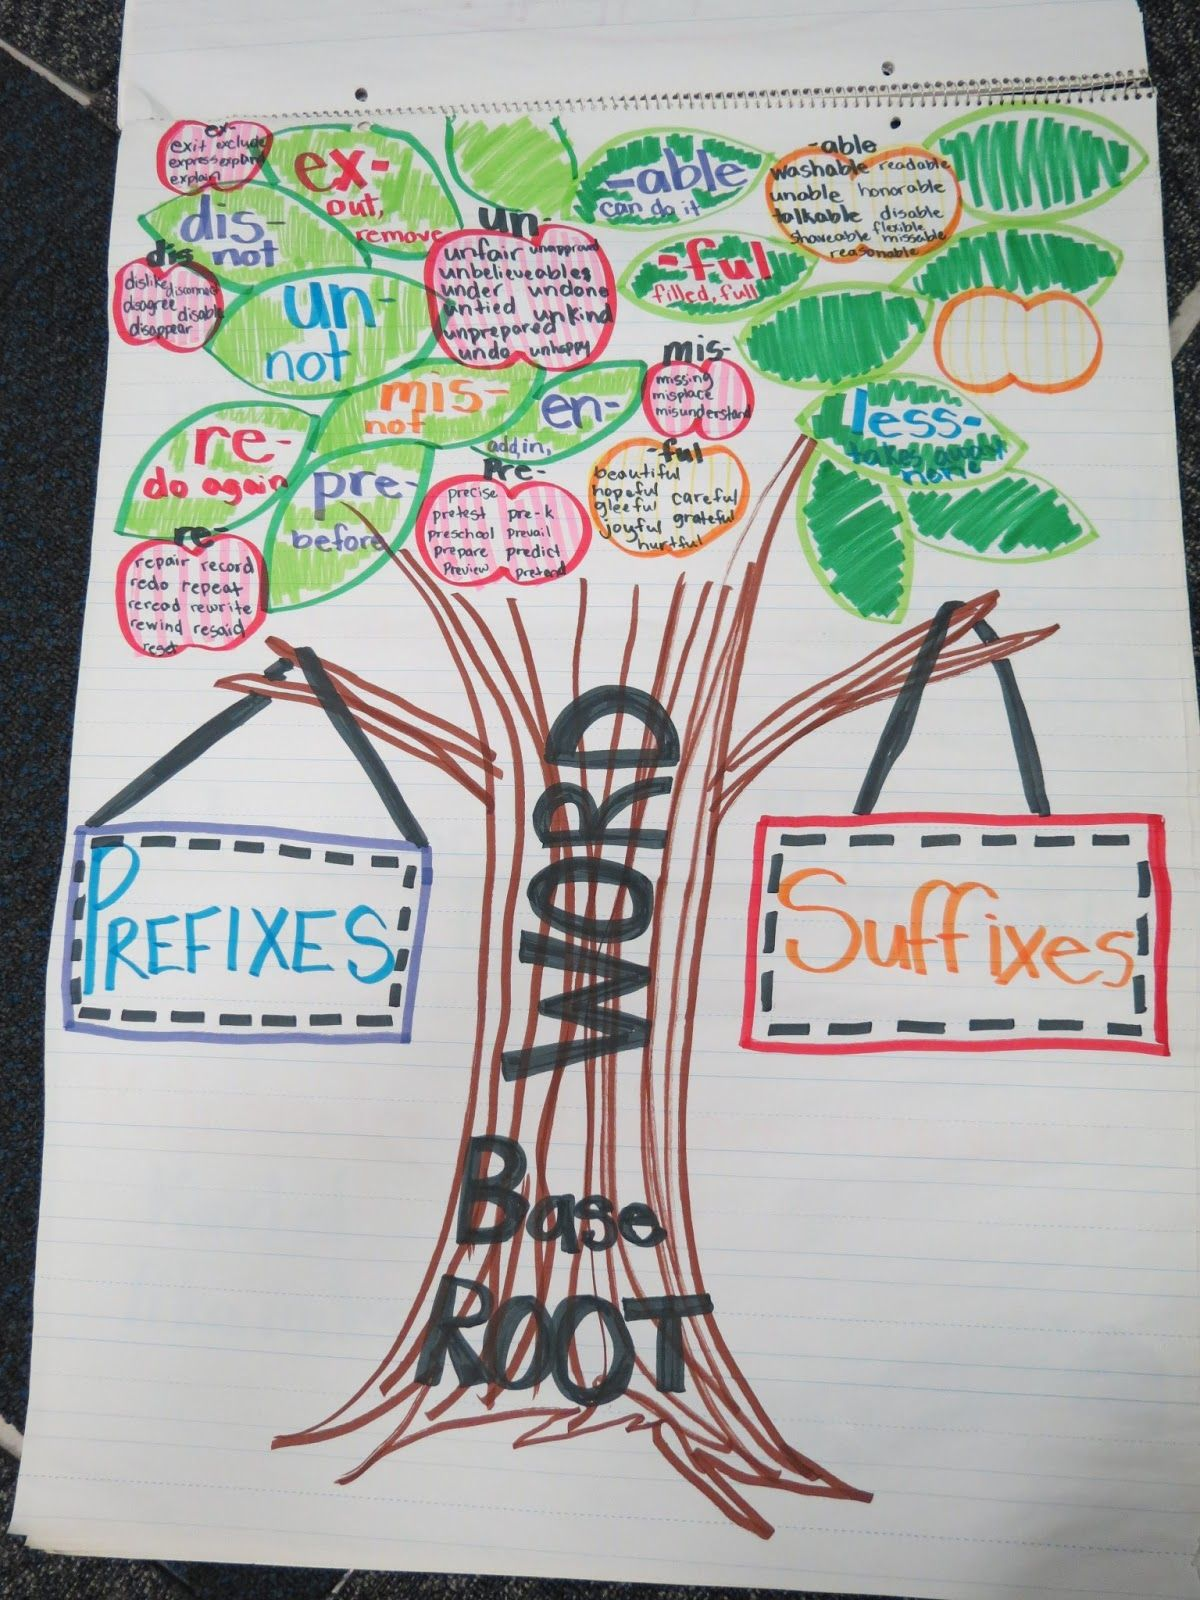 Prefixes And Suffixes Chart Great Visual Could Modify To